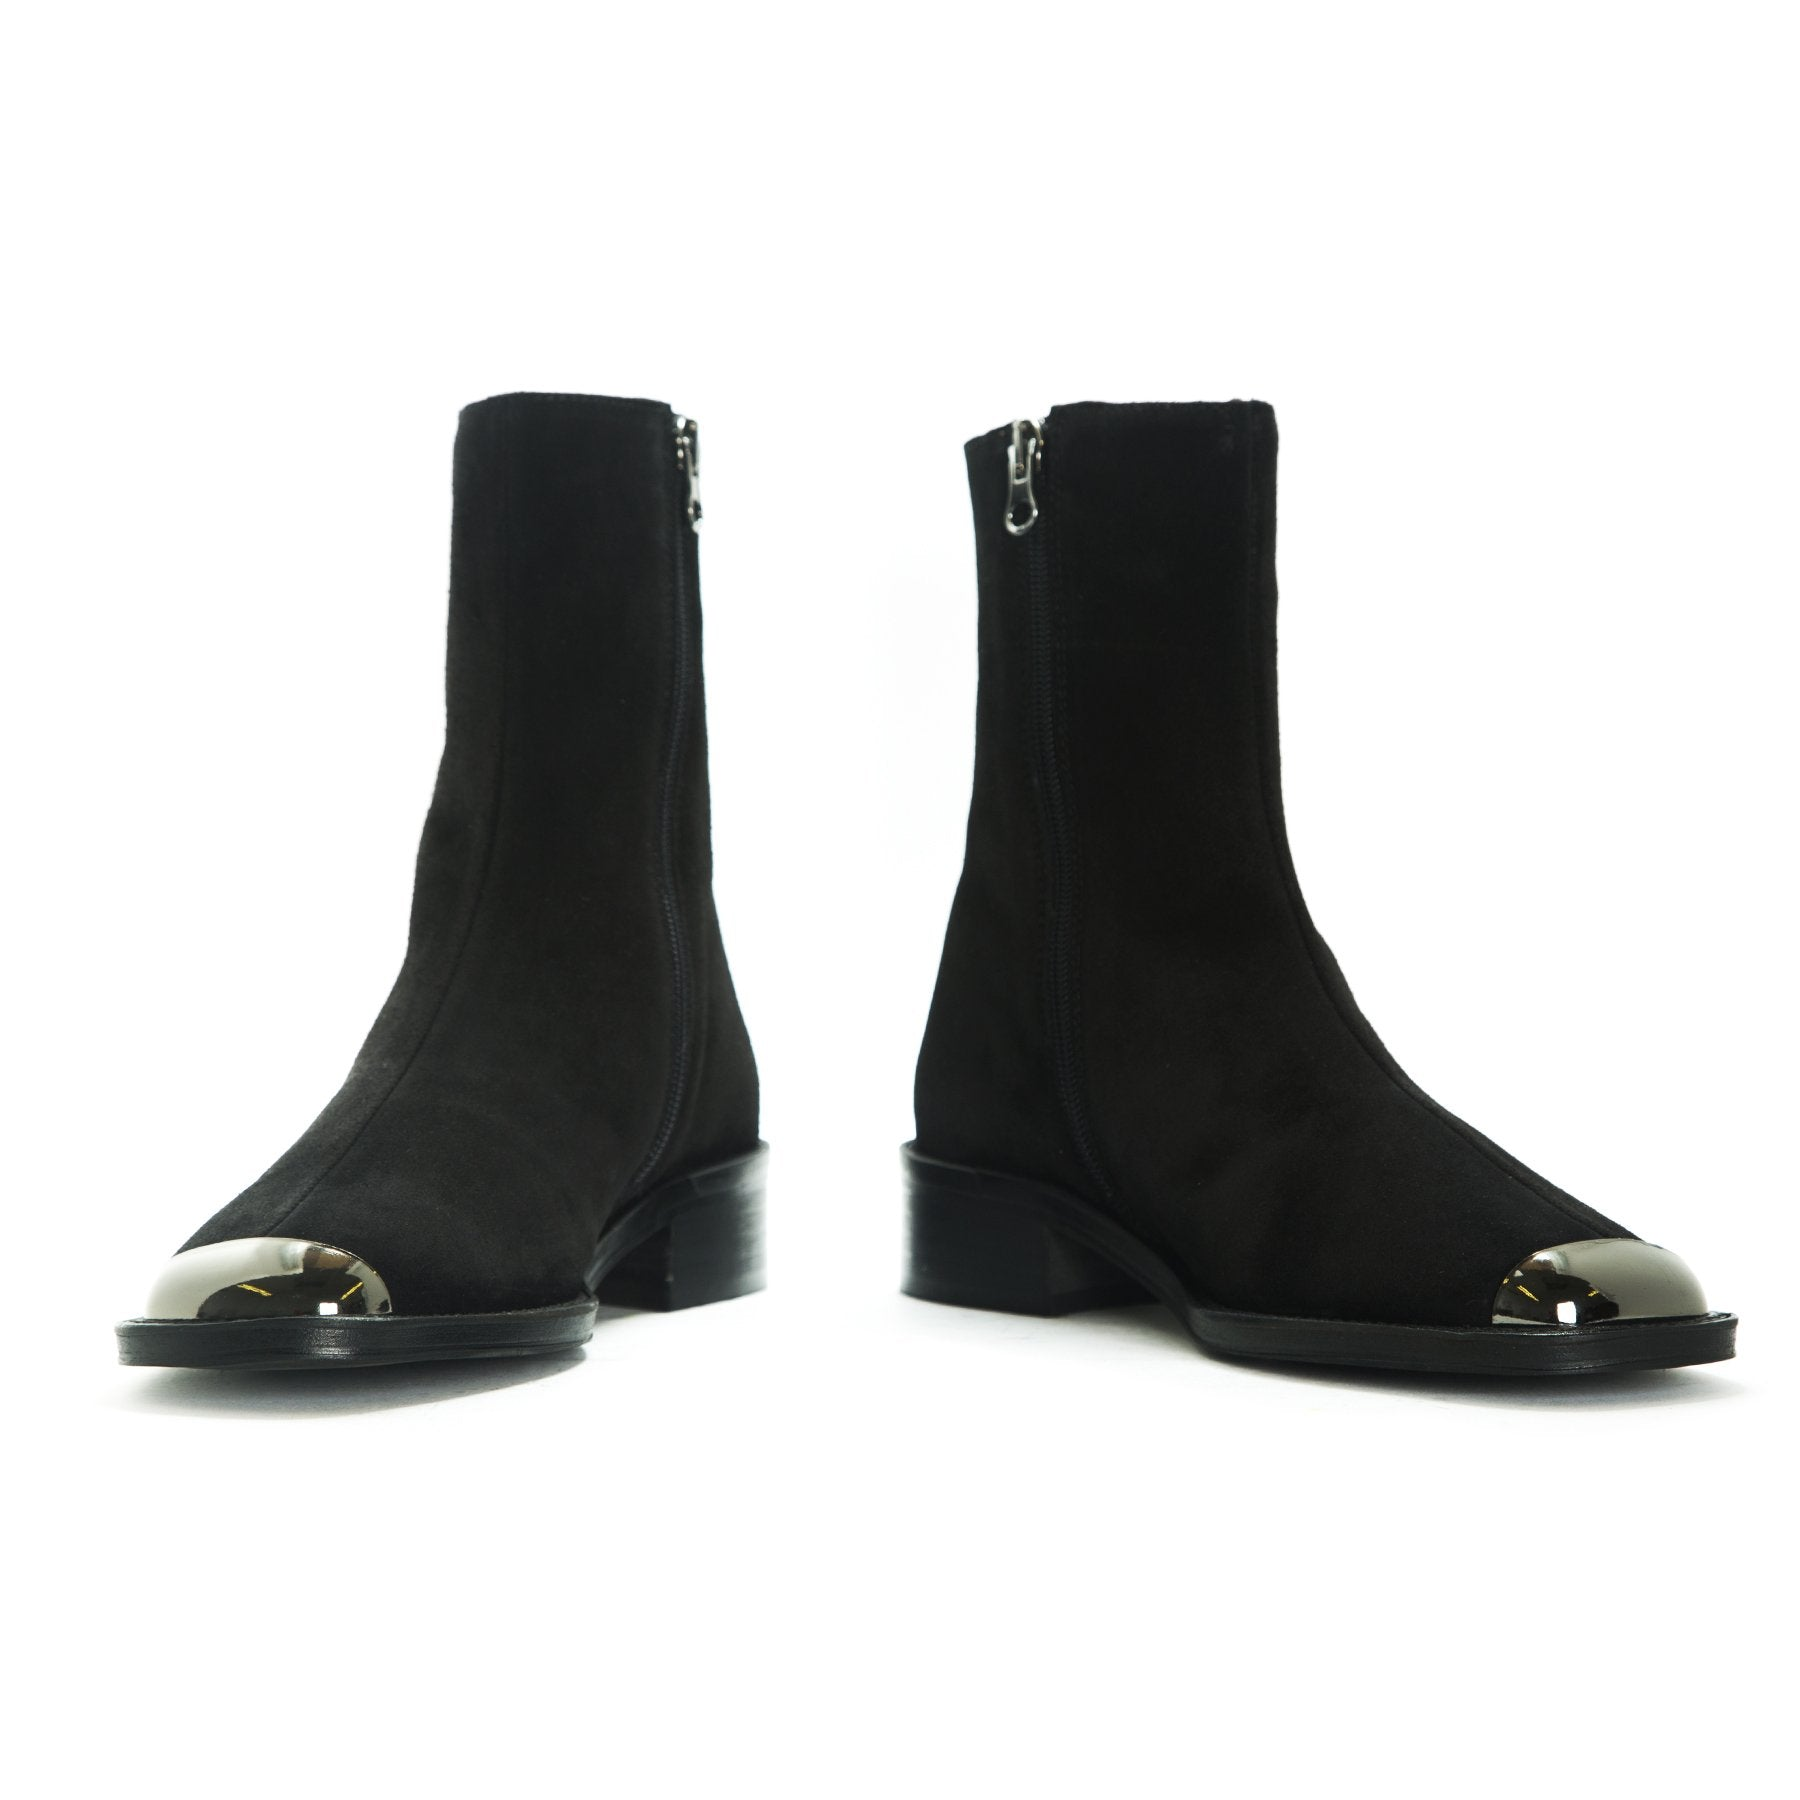 Zapata Black Suede- SOLD OUT